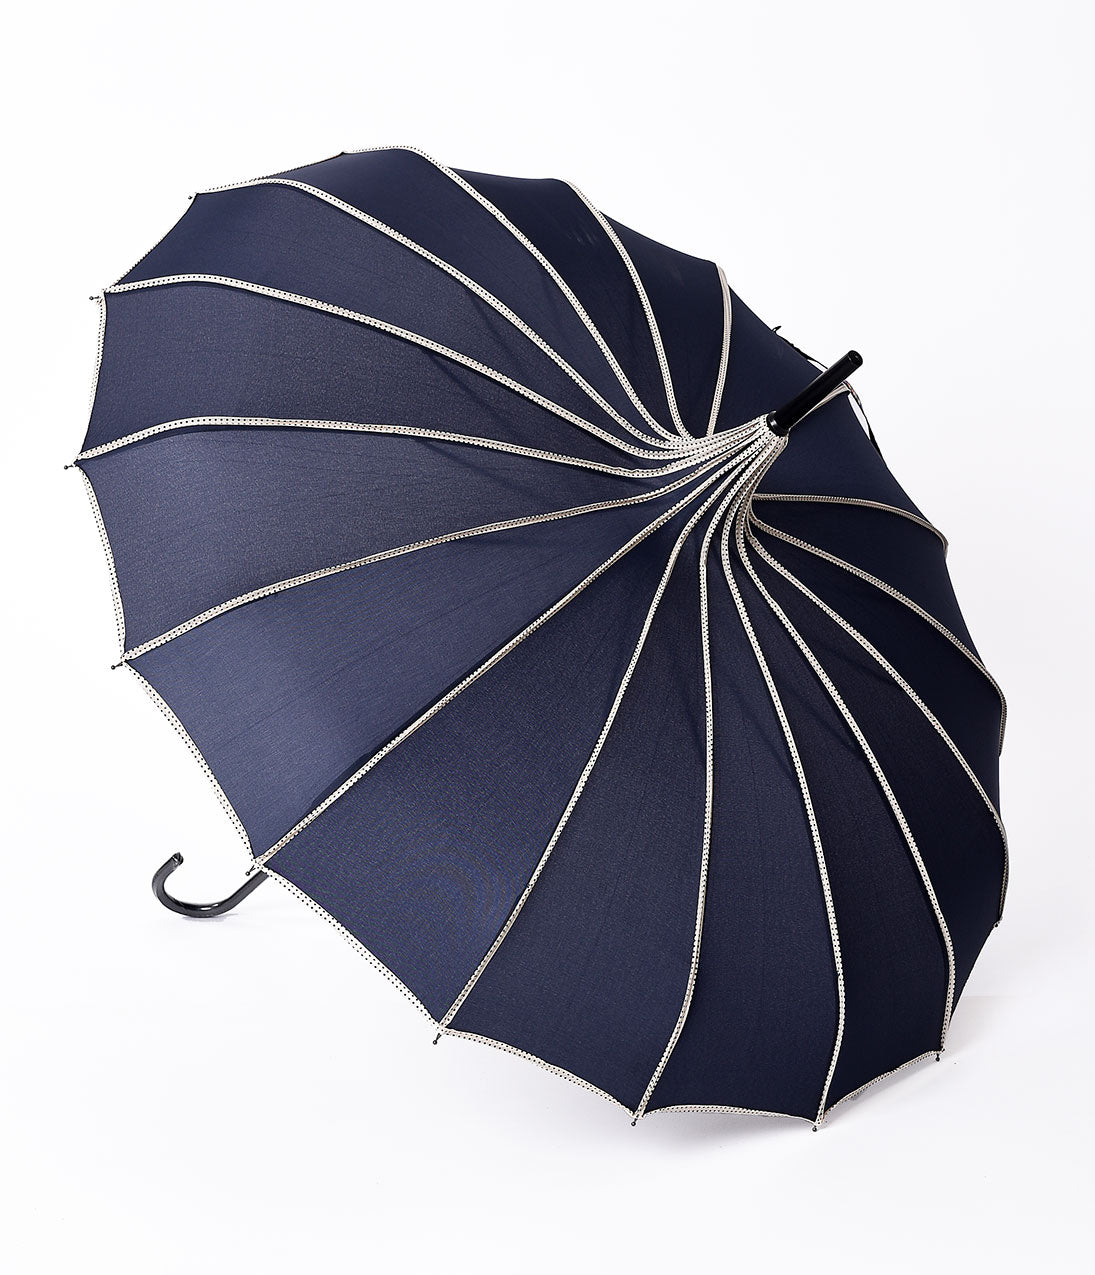 Vintage Style Parasols and Umbrellas Vintage Style Navy  Polka Dot Tan Princess Pagoda Umbrella $32.00 AT vintagedancer.com